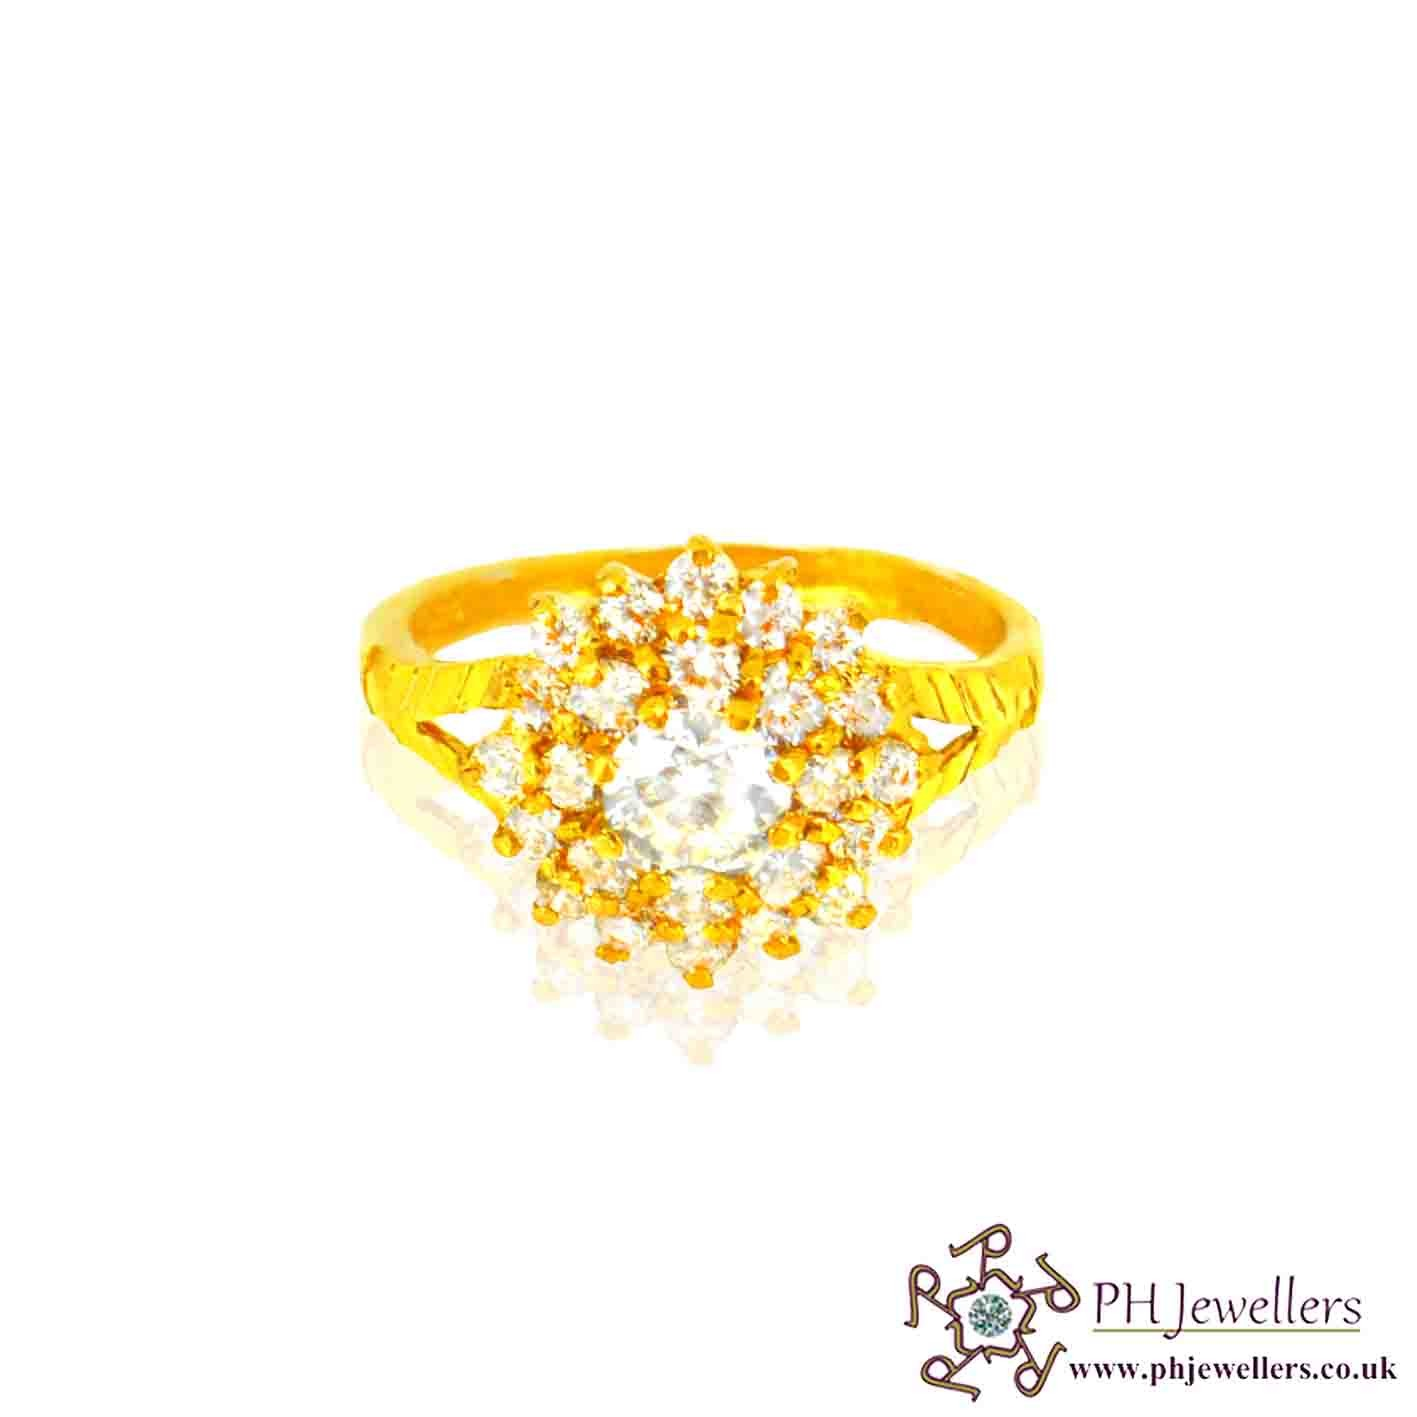 22ct 916 Hallmark Yellow Gold Cluster Round Size M,N,O Ring CZ SR34